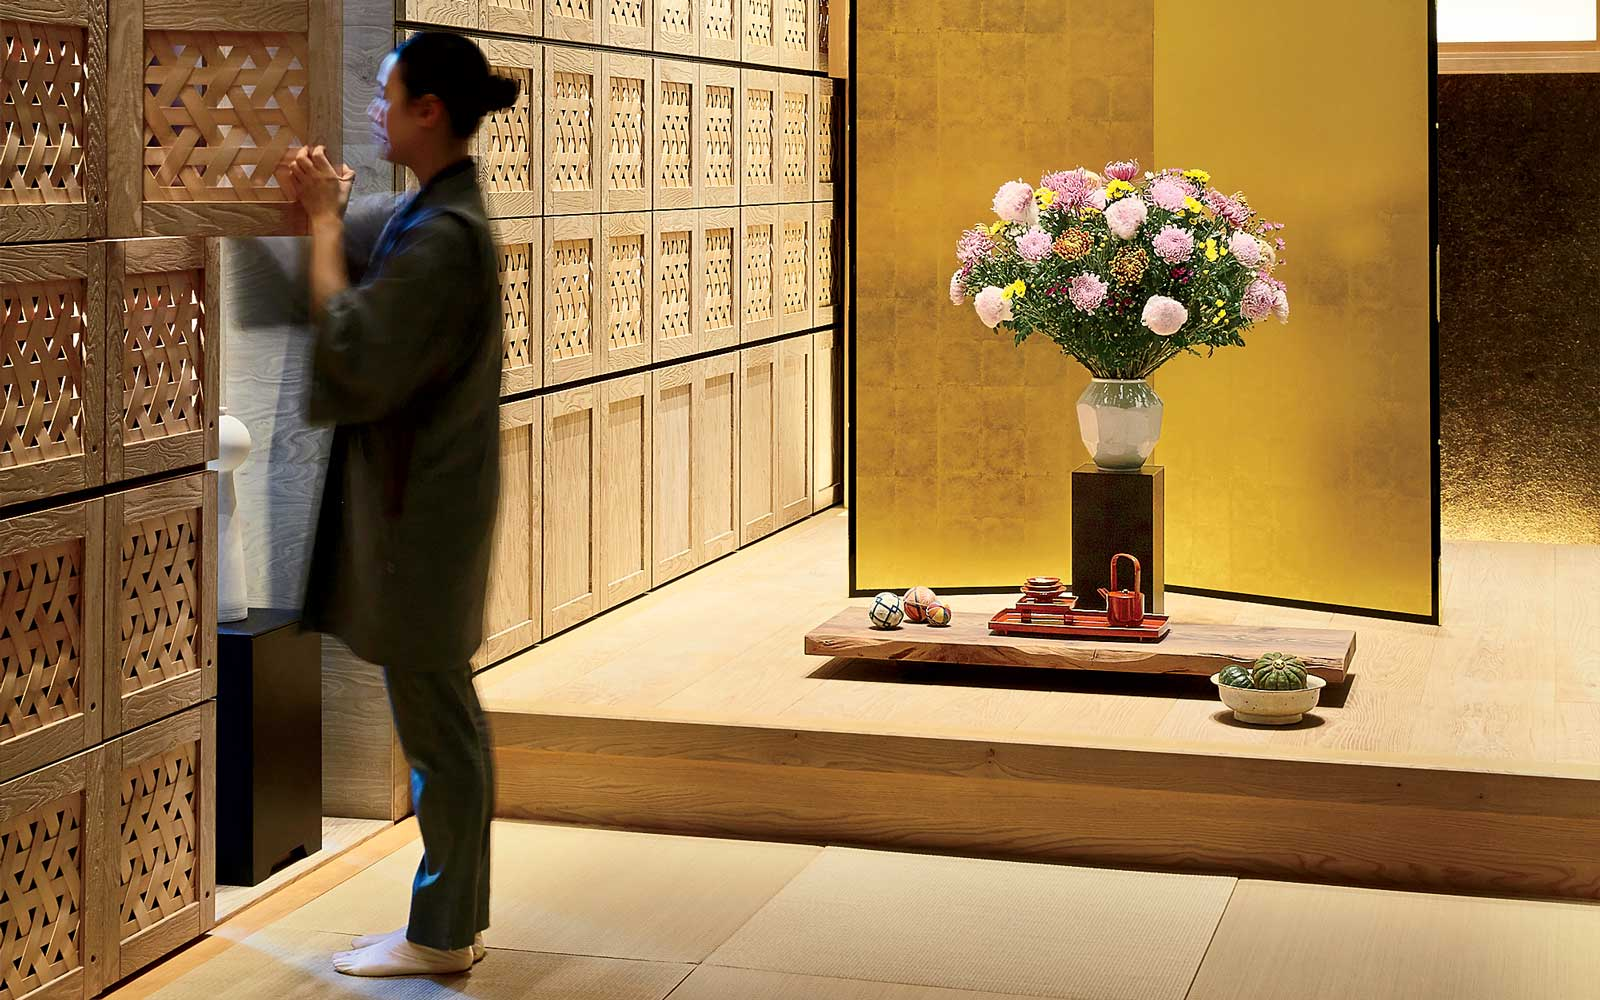 How Traditionalism and Modernism Coexist in Today's Tokyo